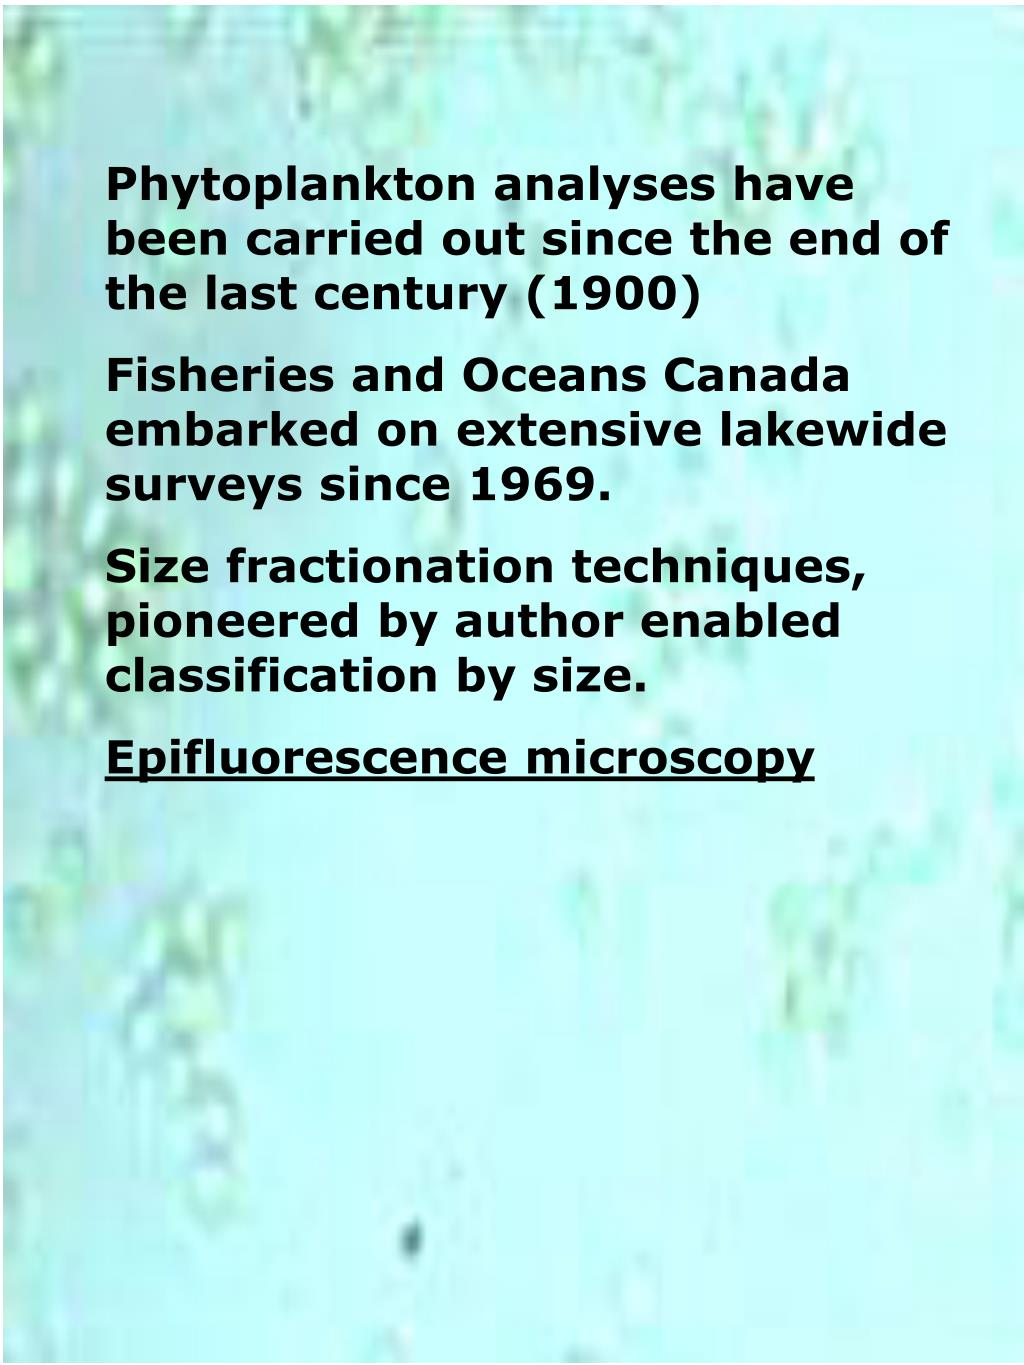 Phytoplankton analyses have been carried out since the end of the last century (1900)